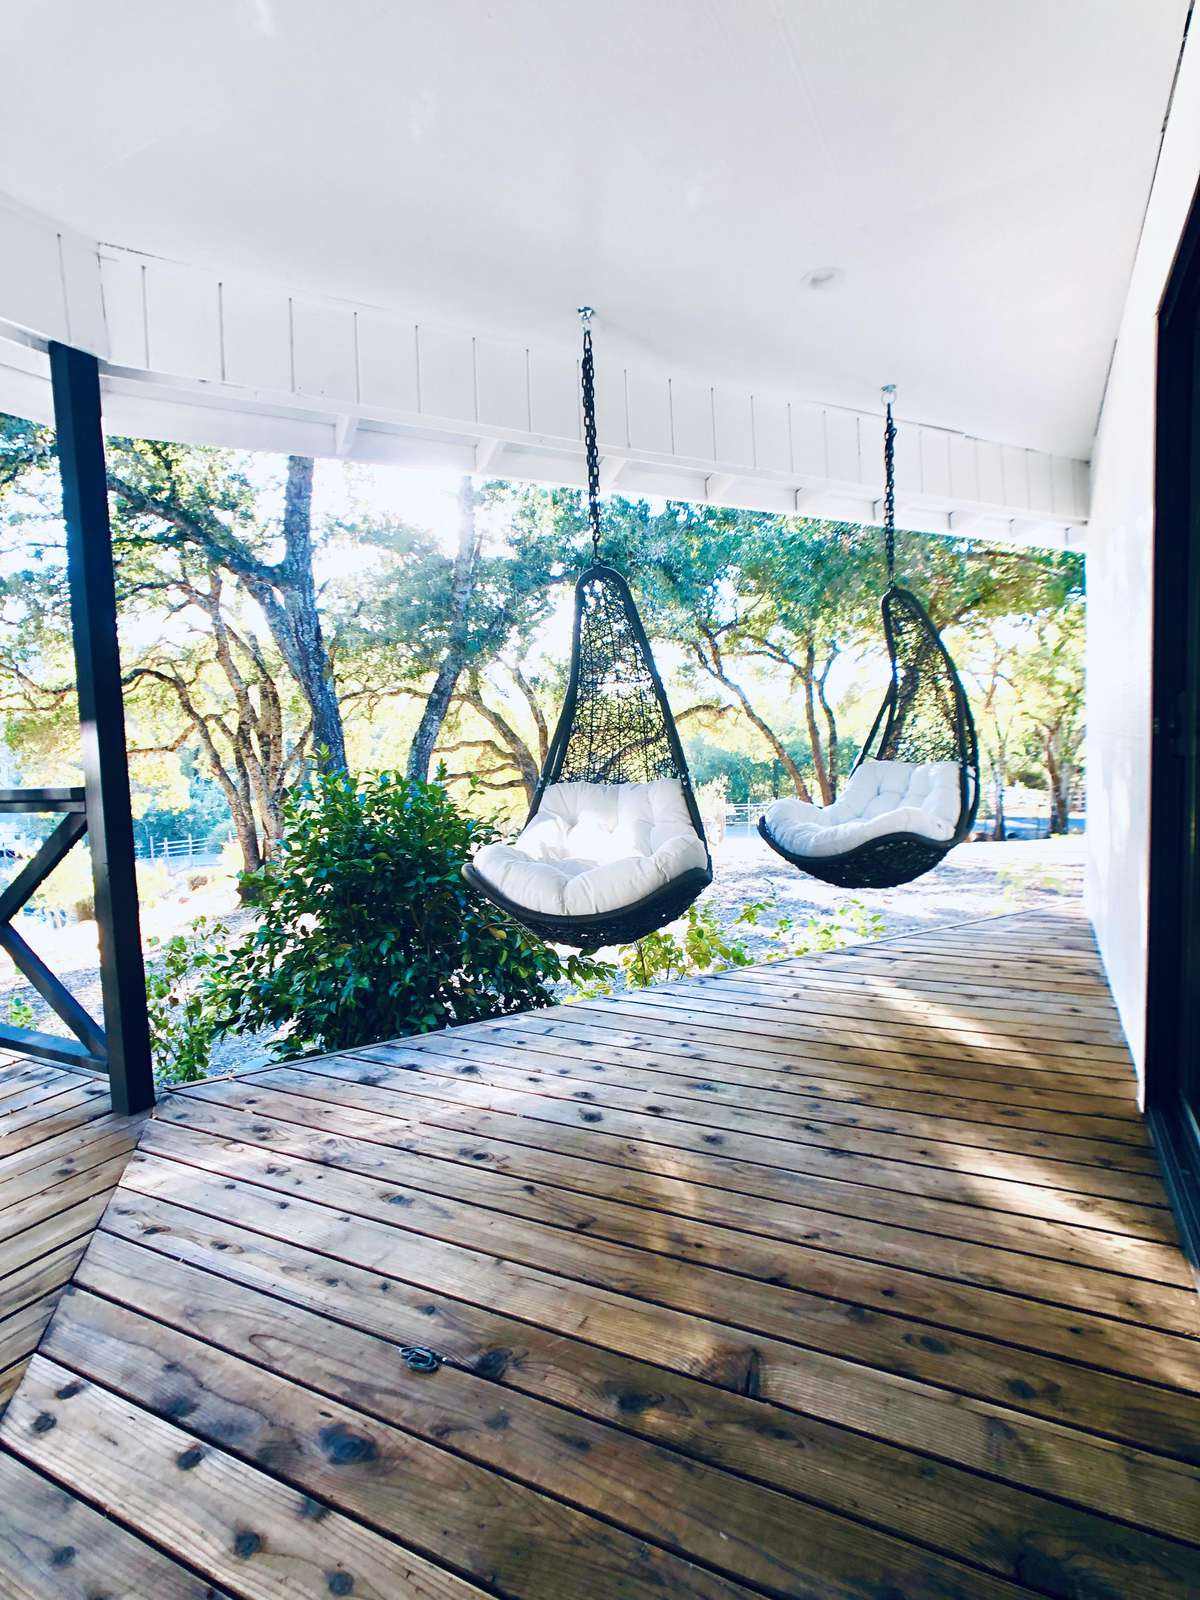 Relax in outdoor hanging chairs overlooking pond